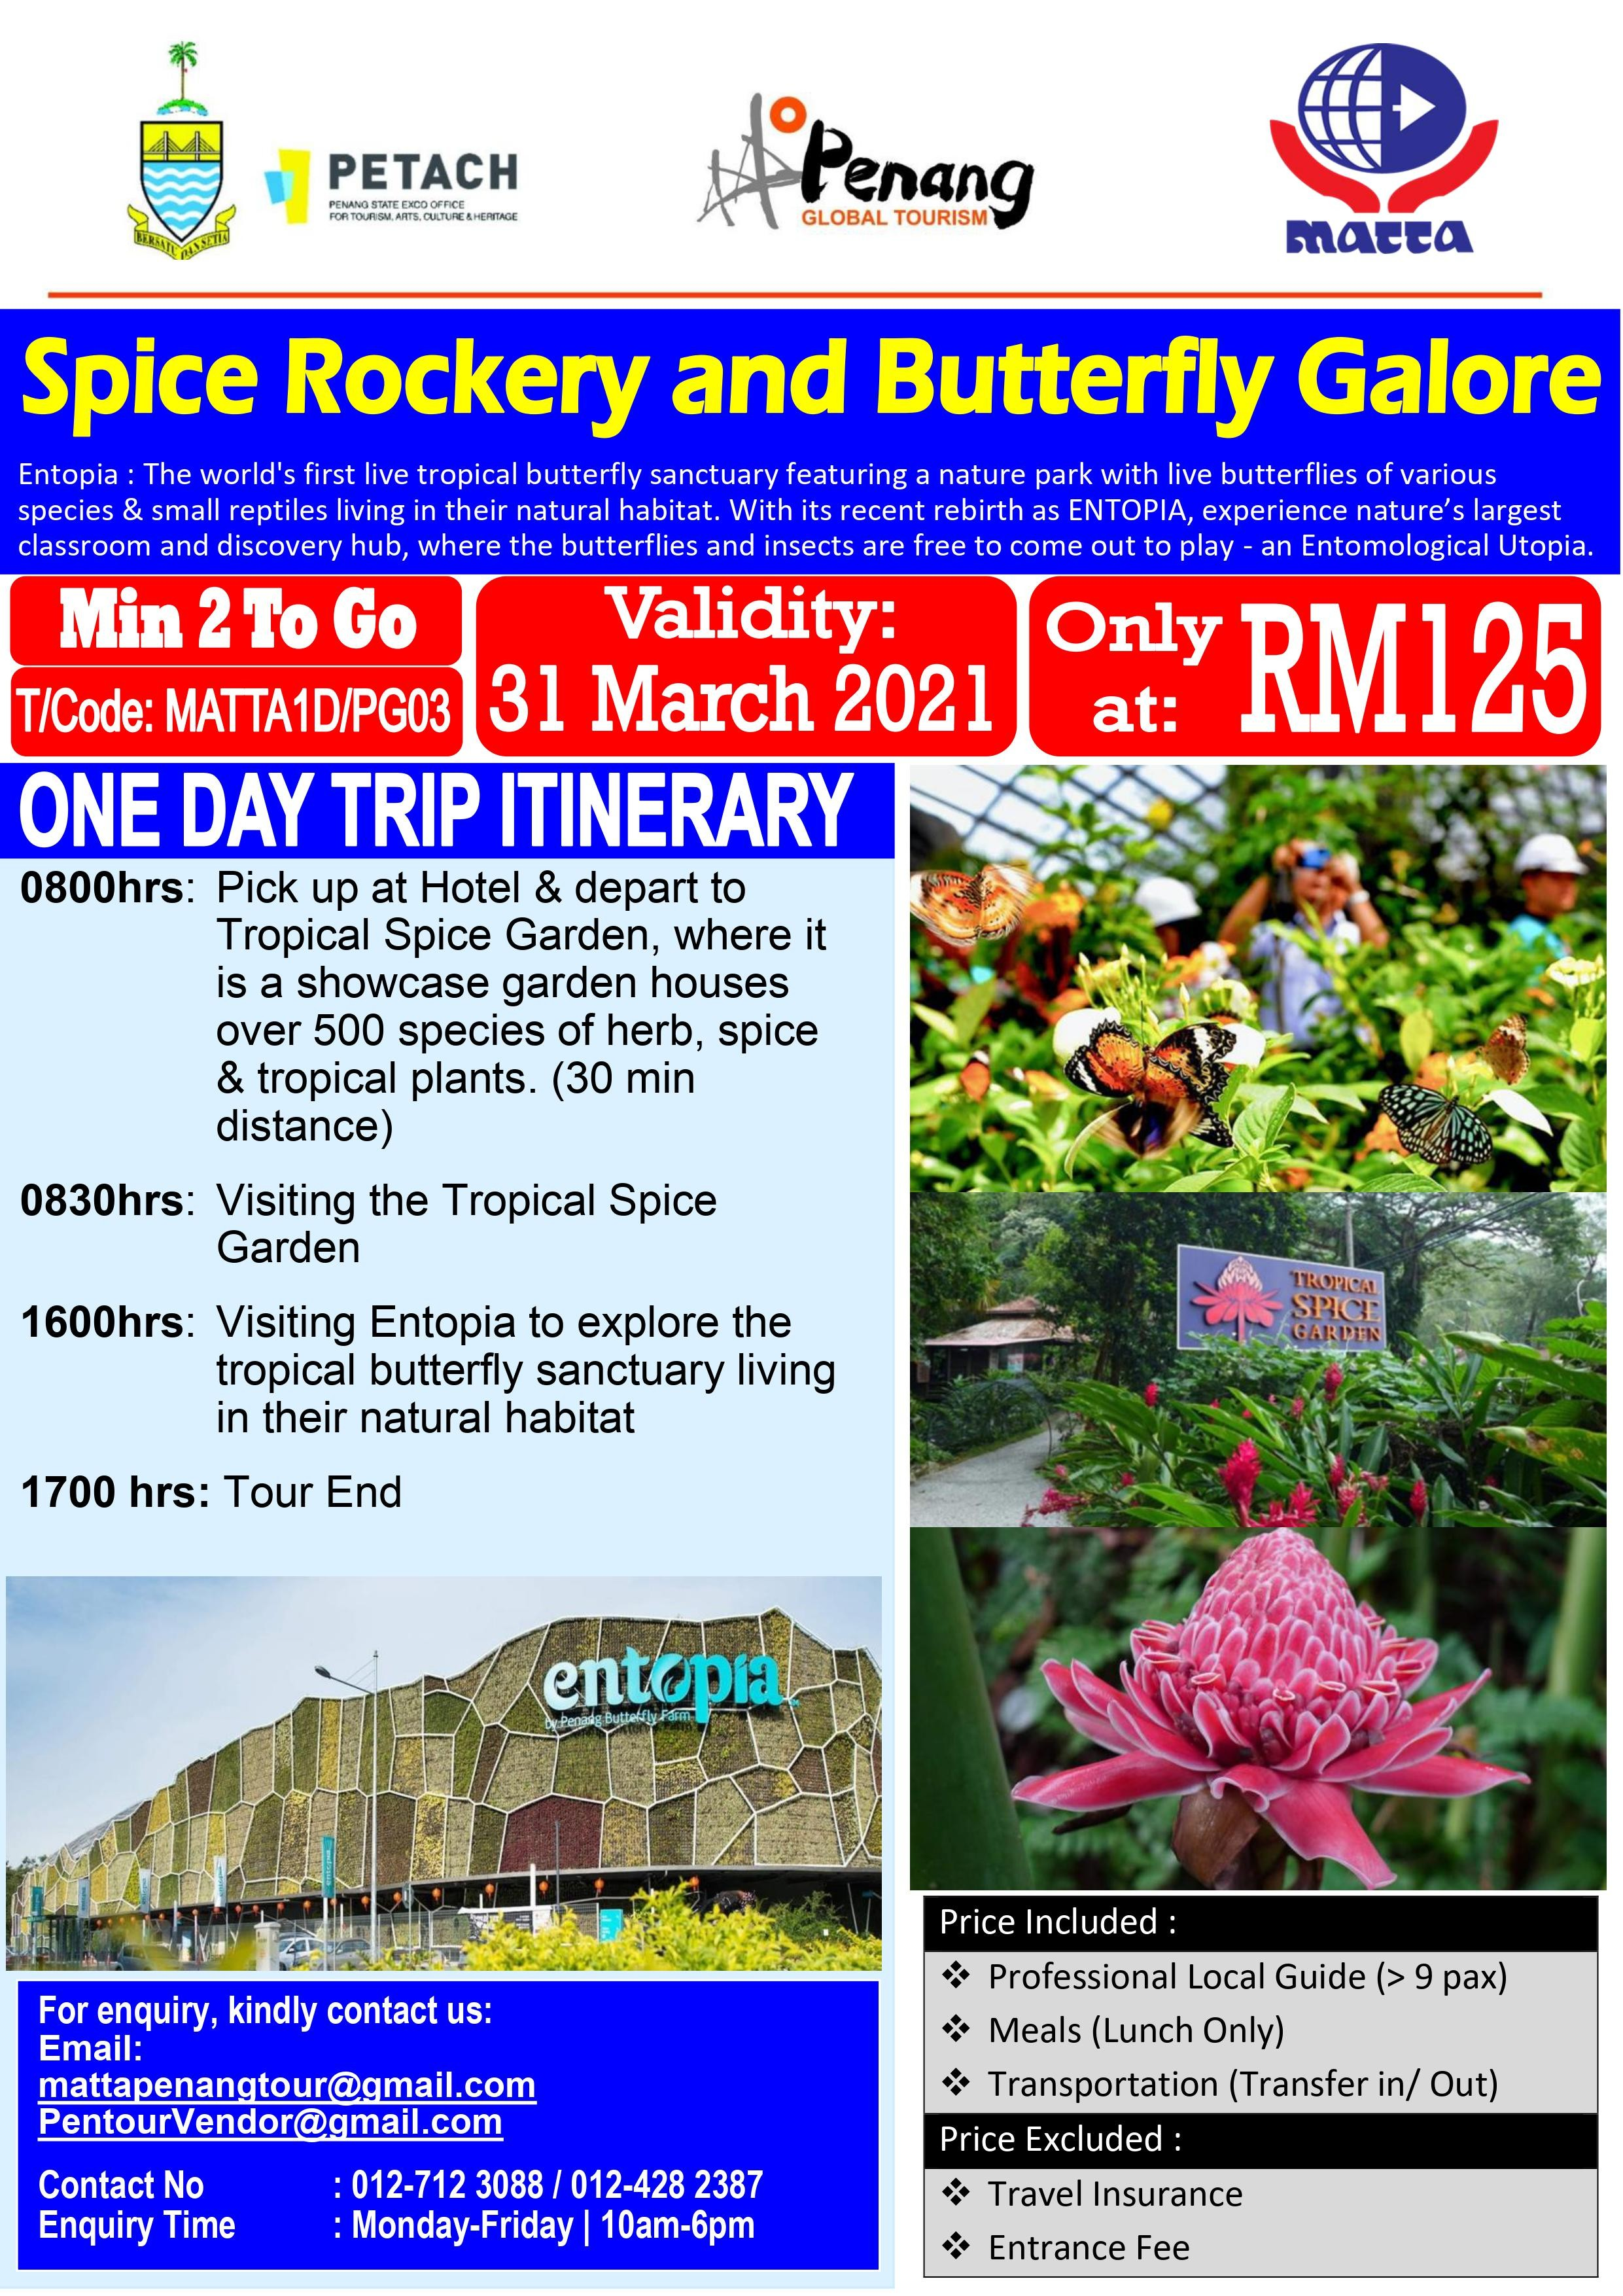 Spice Rockery and Butterfly Galore - 1 Day